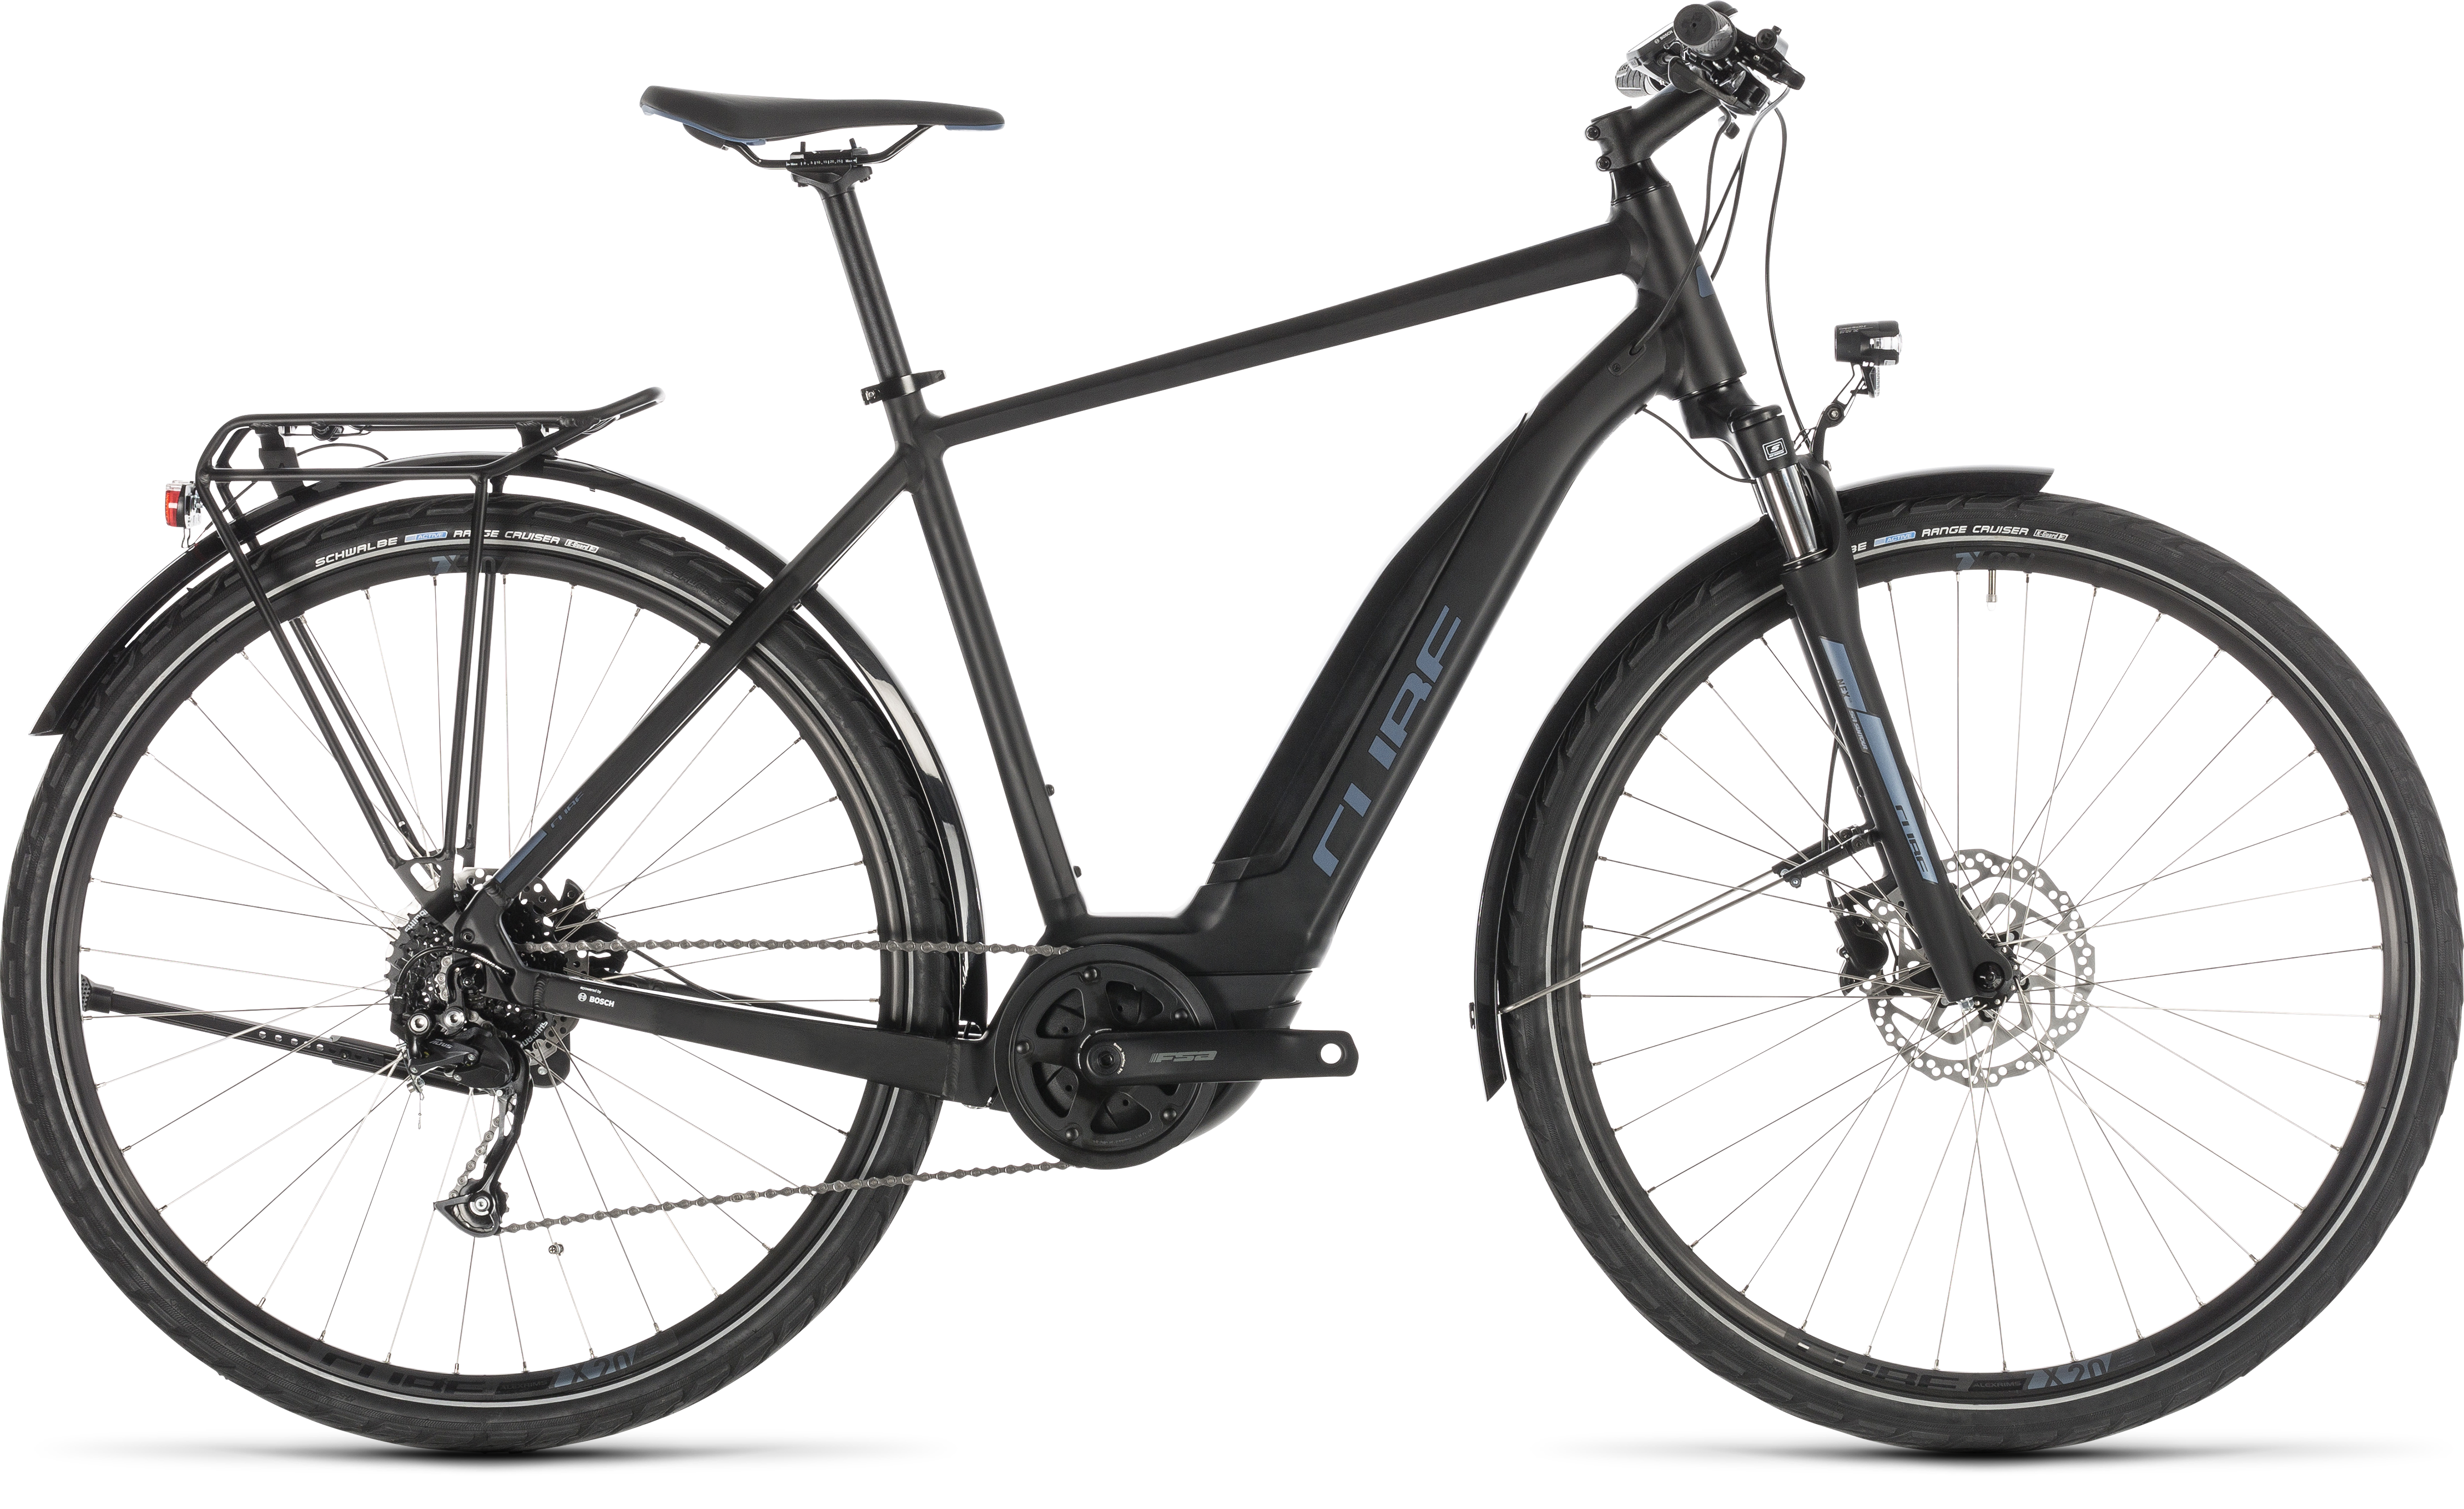 2019 cube touring hybrid one 500 electric bike in black 1. Black Bedroom Furniture Sets. Home Design Ideas